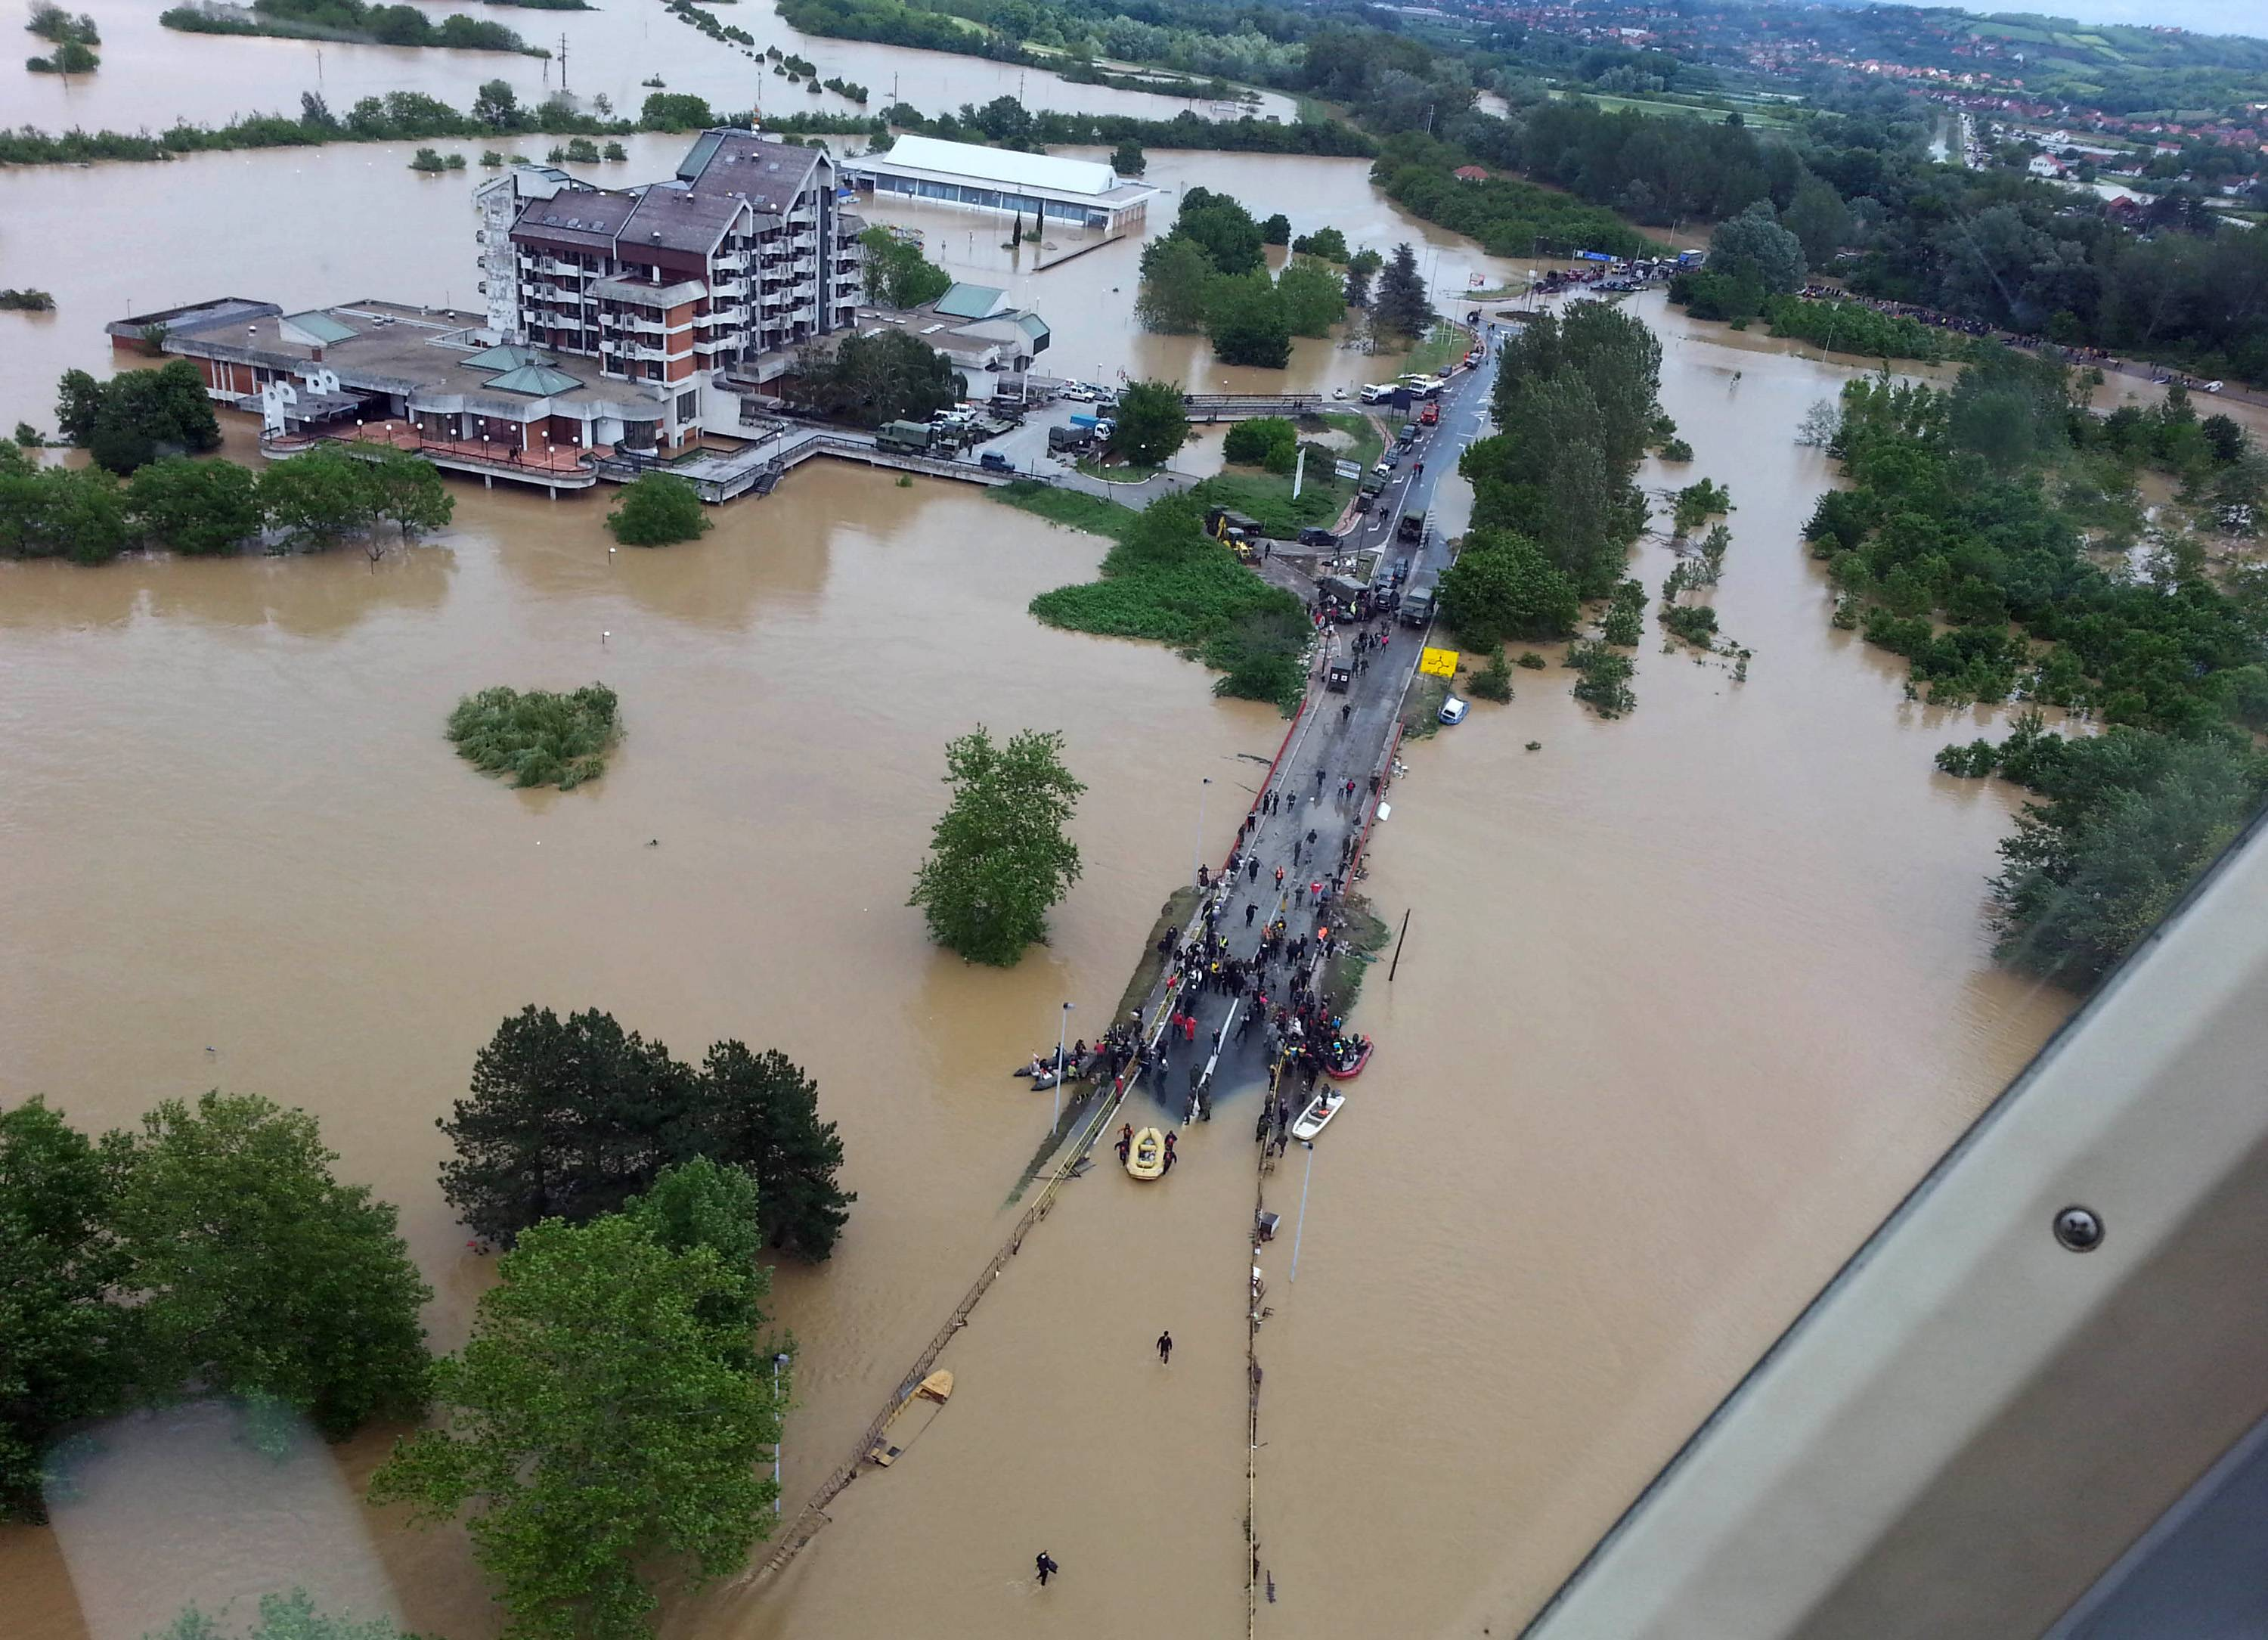 This image made available by the Serbian police shows the flooded area in Obrenovac, 18 miles southwest of Belgrade, Serbia, Sunday. In Serbia, more than 20,000 people have been forced from their homes. Officials there fear more flooding later Sunday as floodwaters travel down the Sava and reach the country.